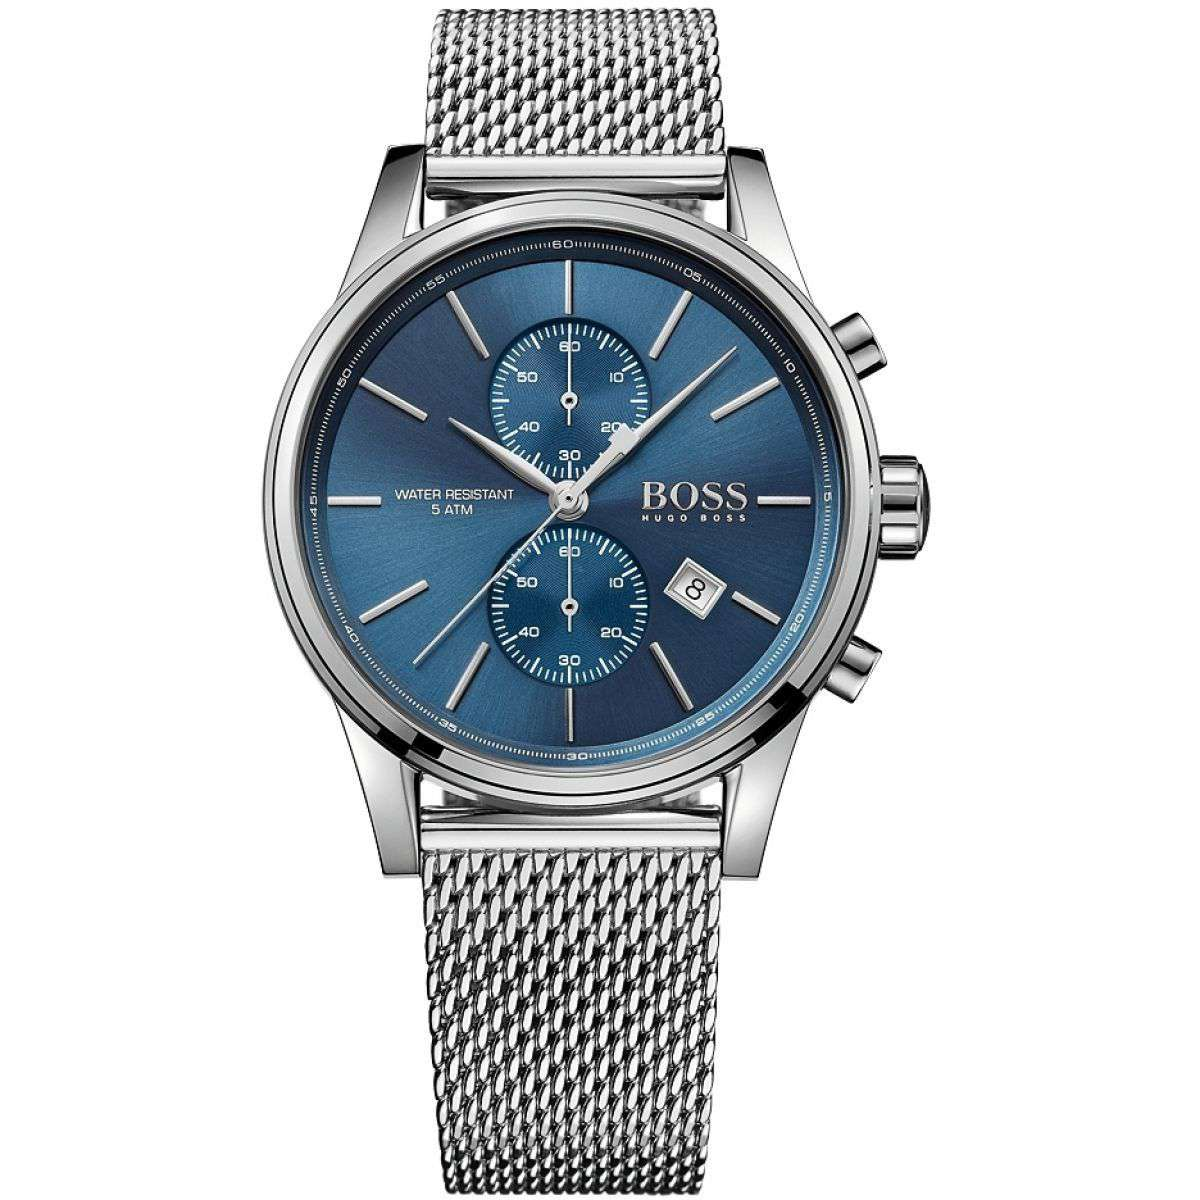 Hugo Boss Men's HB 1513441 Blue Dial Chronograph Watch Steel Umisfashion Store